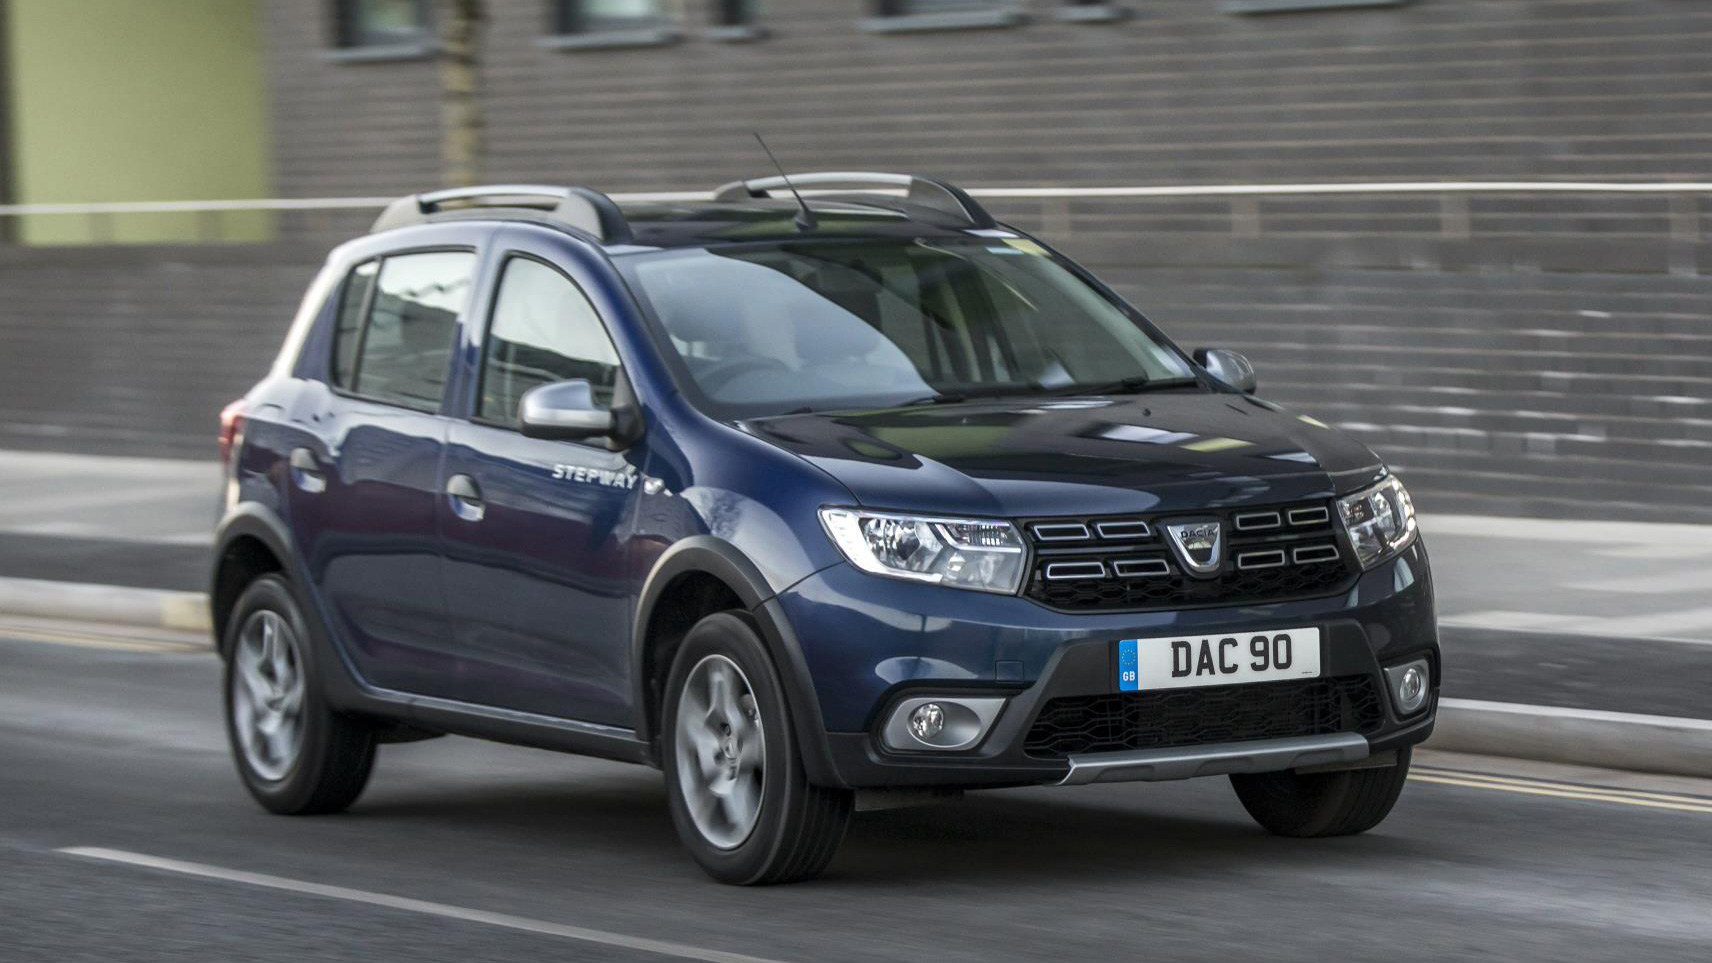 used dacia sandero stepway cars for sale on auto trader uk. Black Bedroom Furniture Sets. Home Design Ideas